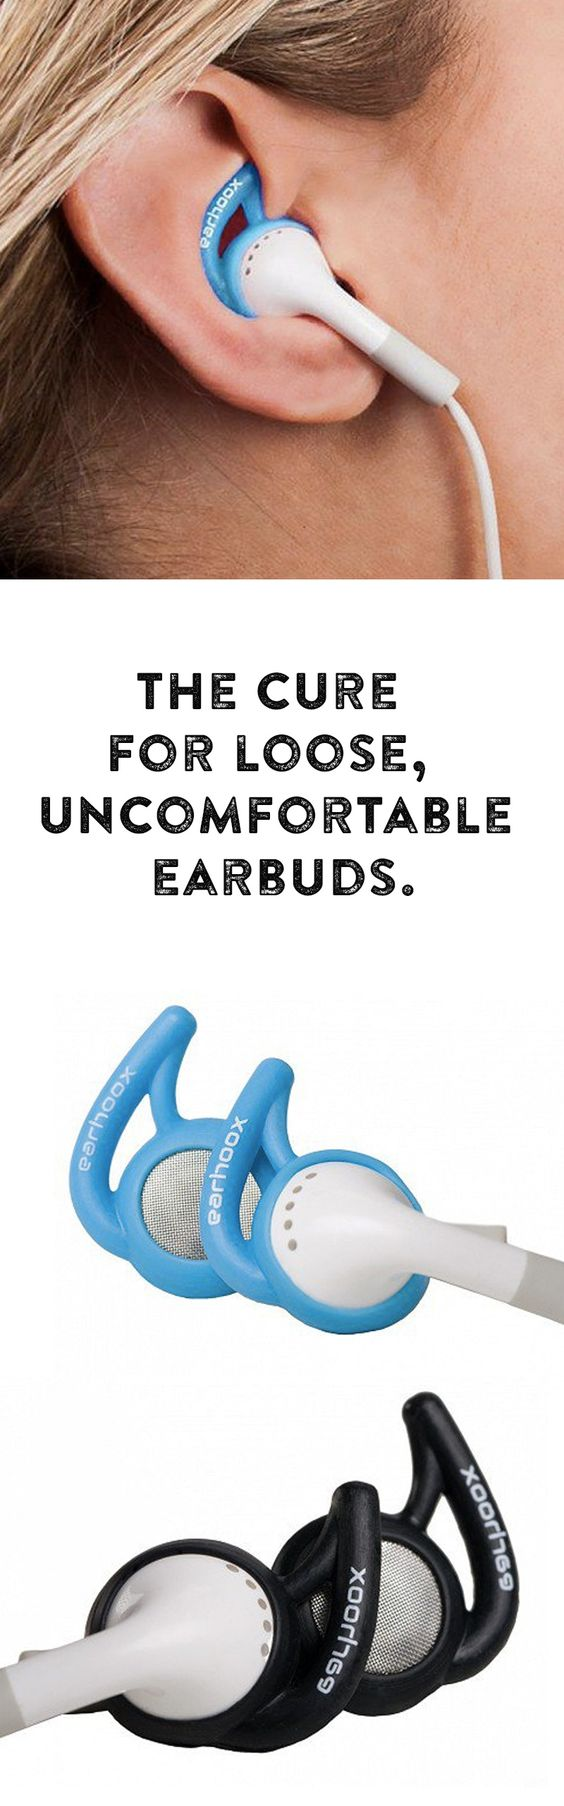 The cure for loose, uncomfortable earbuds